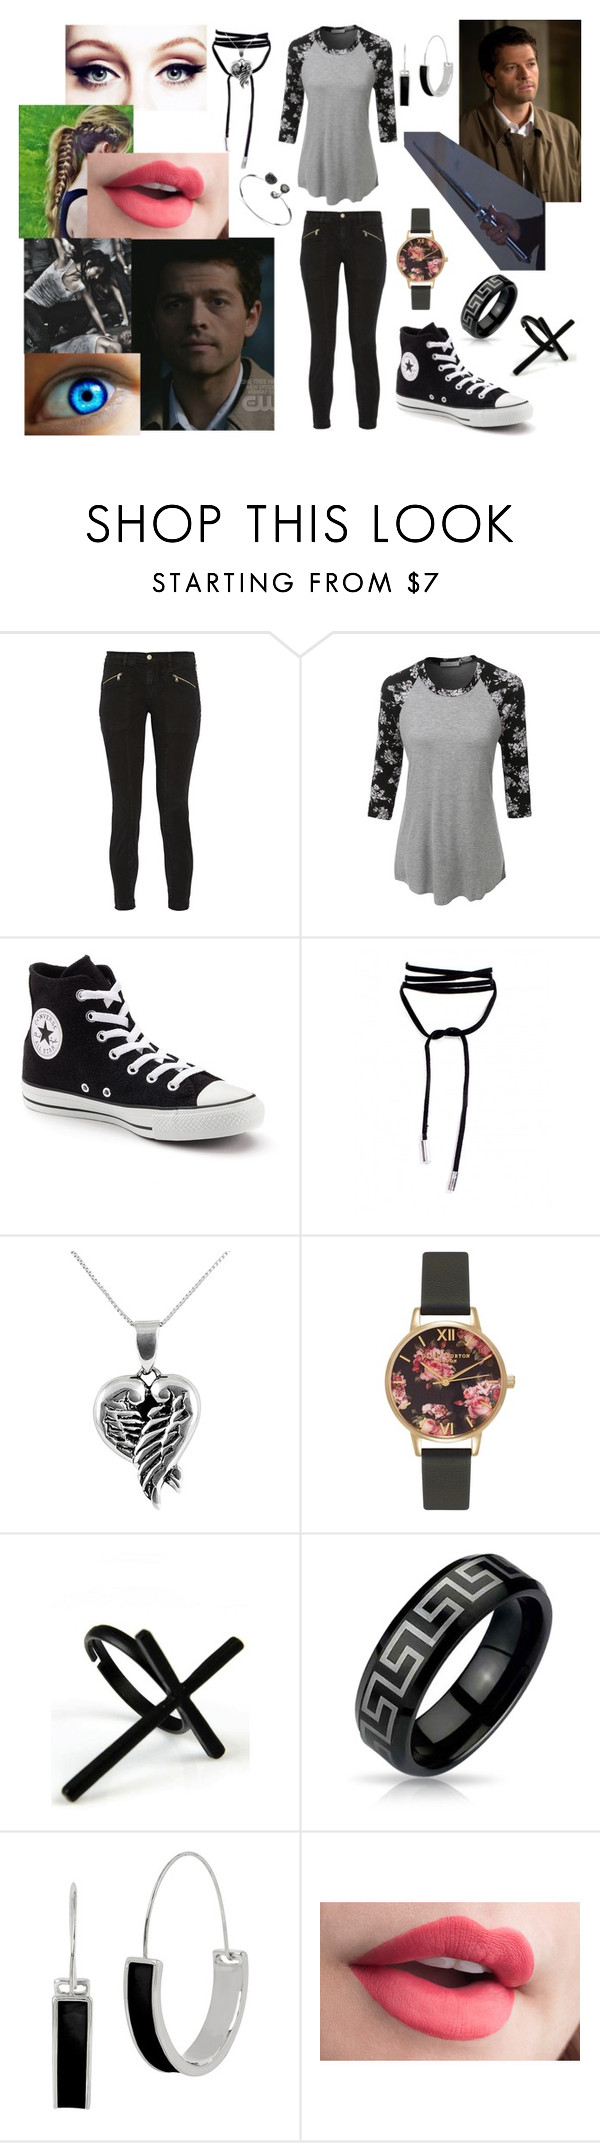 """Castiel's Angel"" by fabulouslynerdy on Polyvore featuring J Brand, LE3NO, Converse, Jewel Exclusive, Olivia Burton, Emi Jewellery, Bling Jewelry and Kenneth Cole"